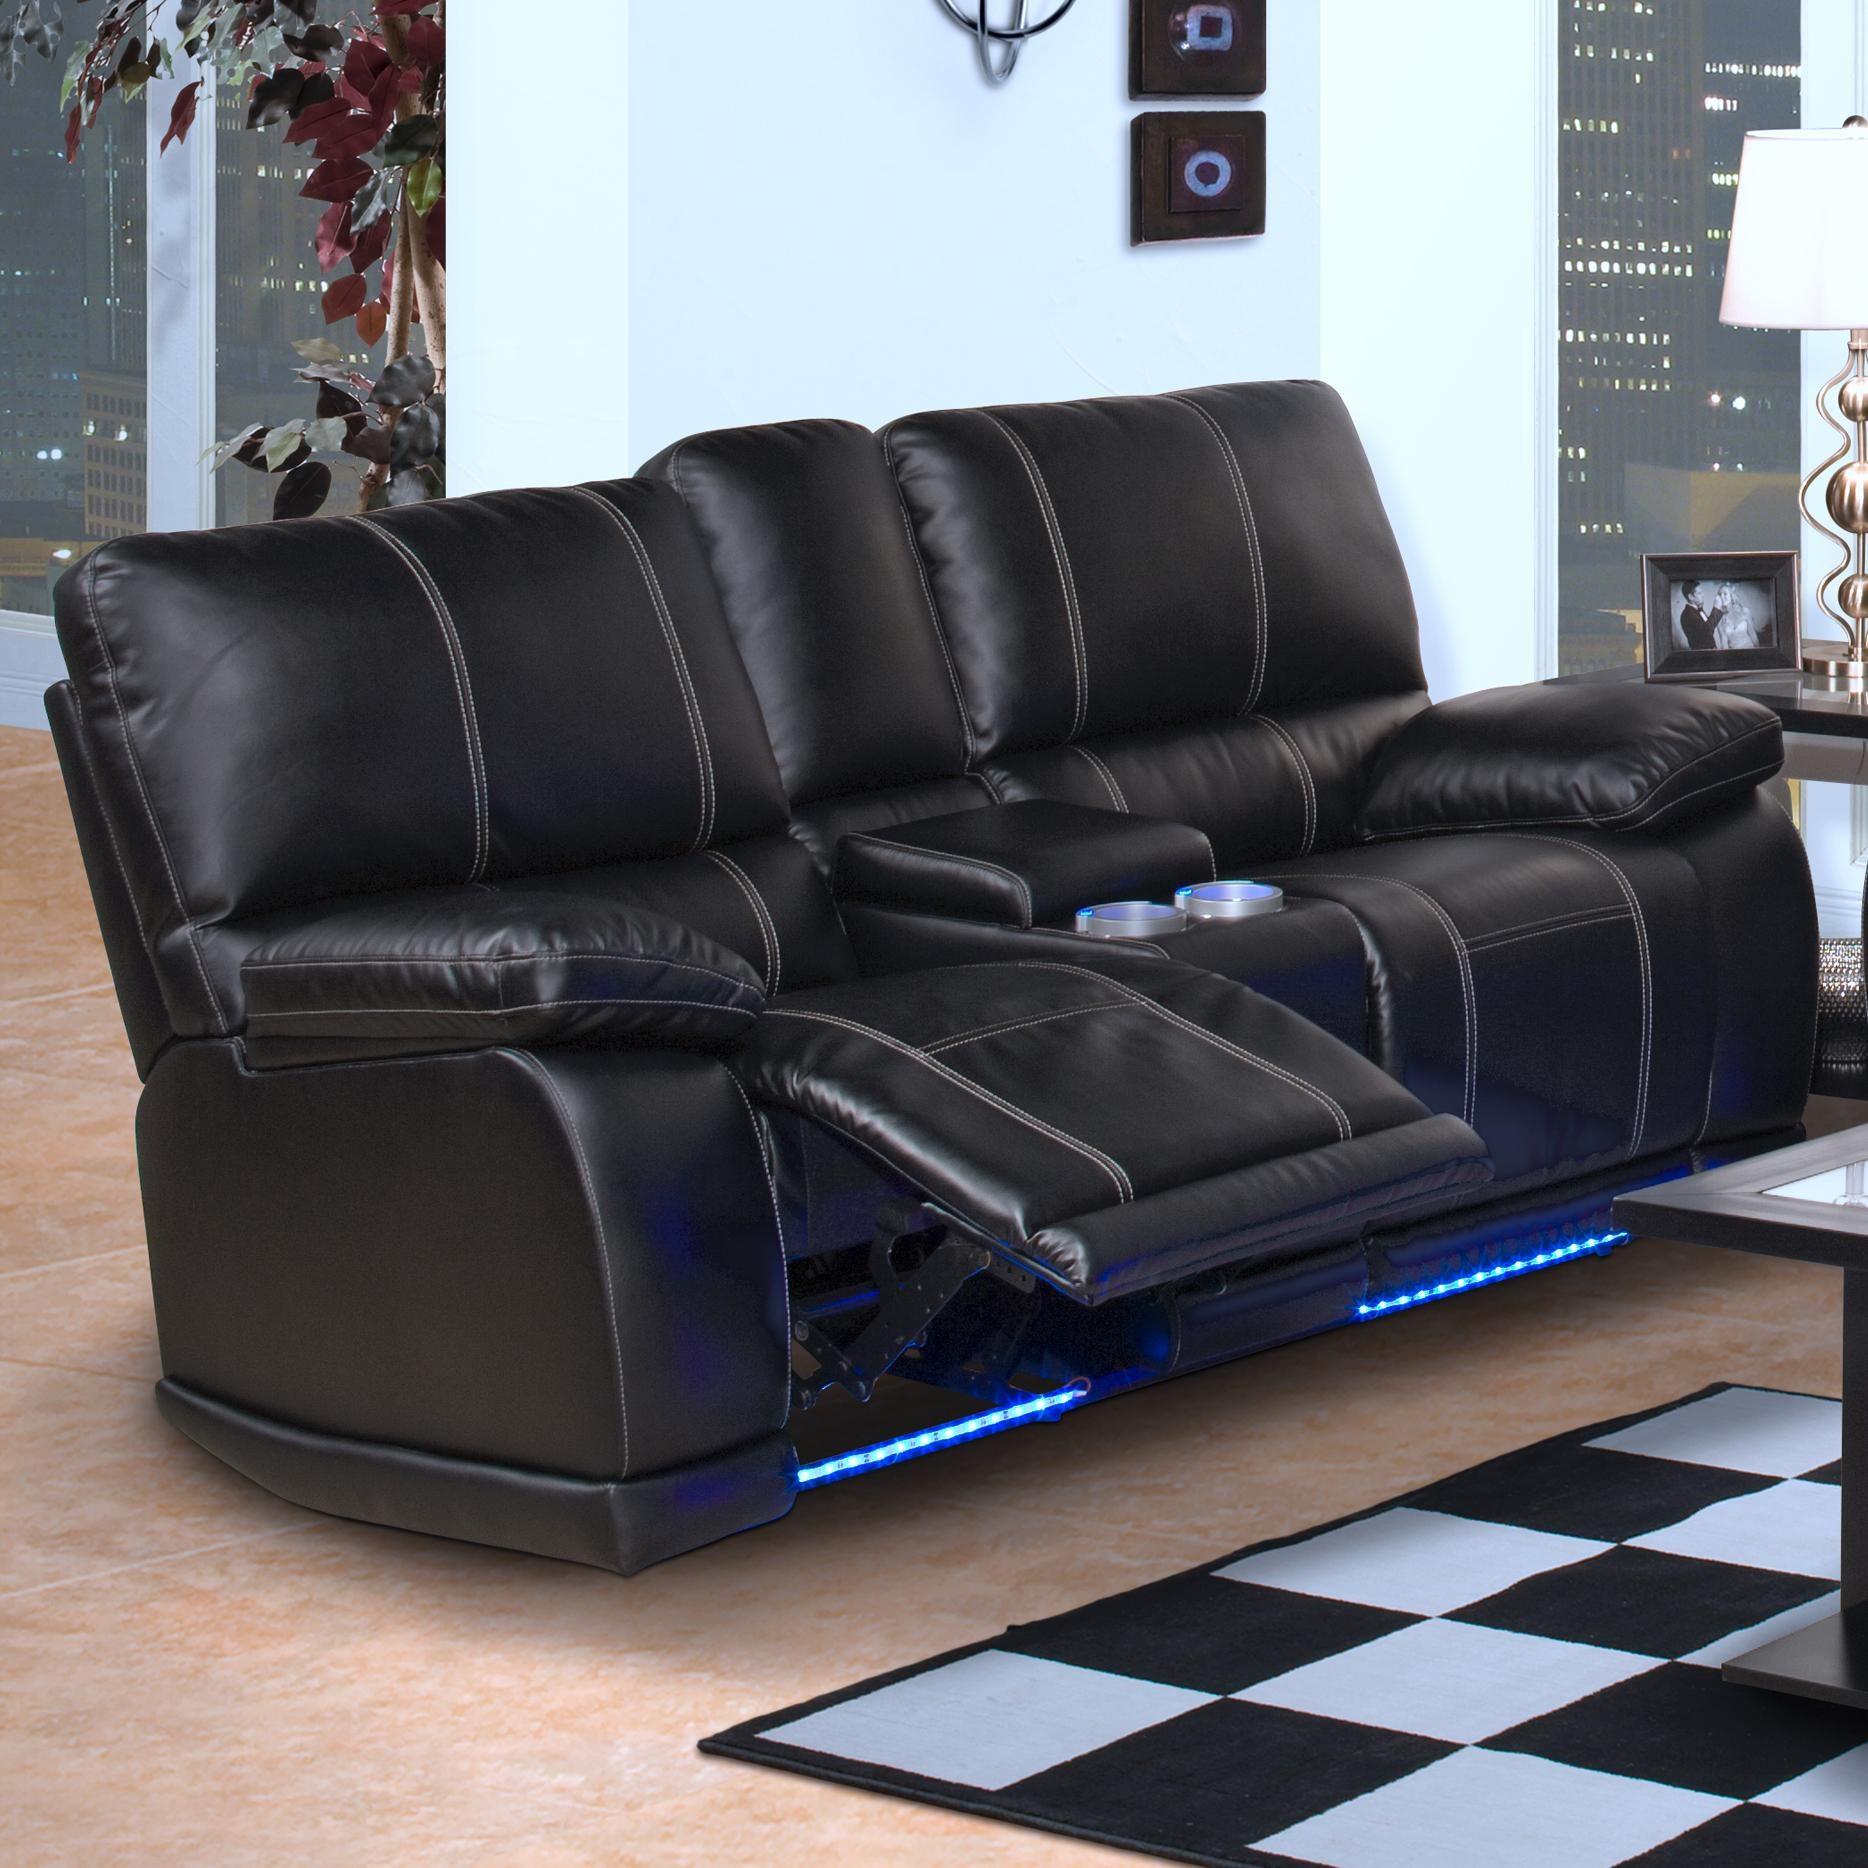 New Classic Electra Contemporary Dual Recliner Console Loveseat with Cup Holders and Storage ...